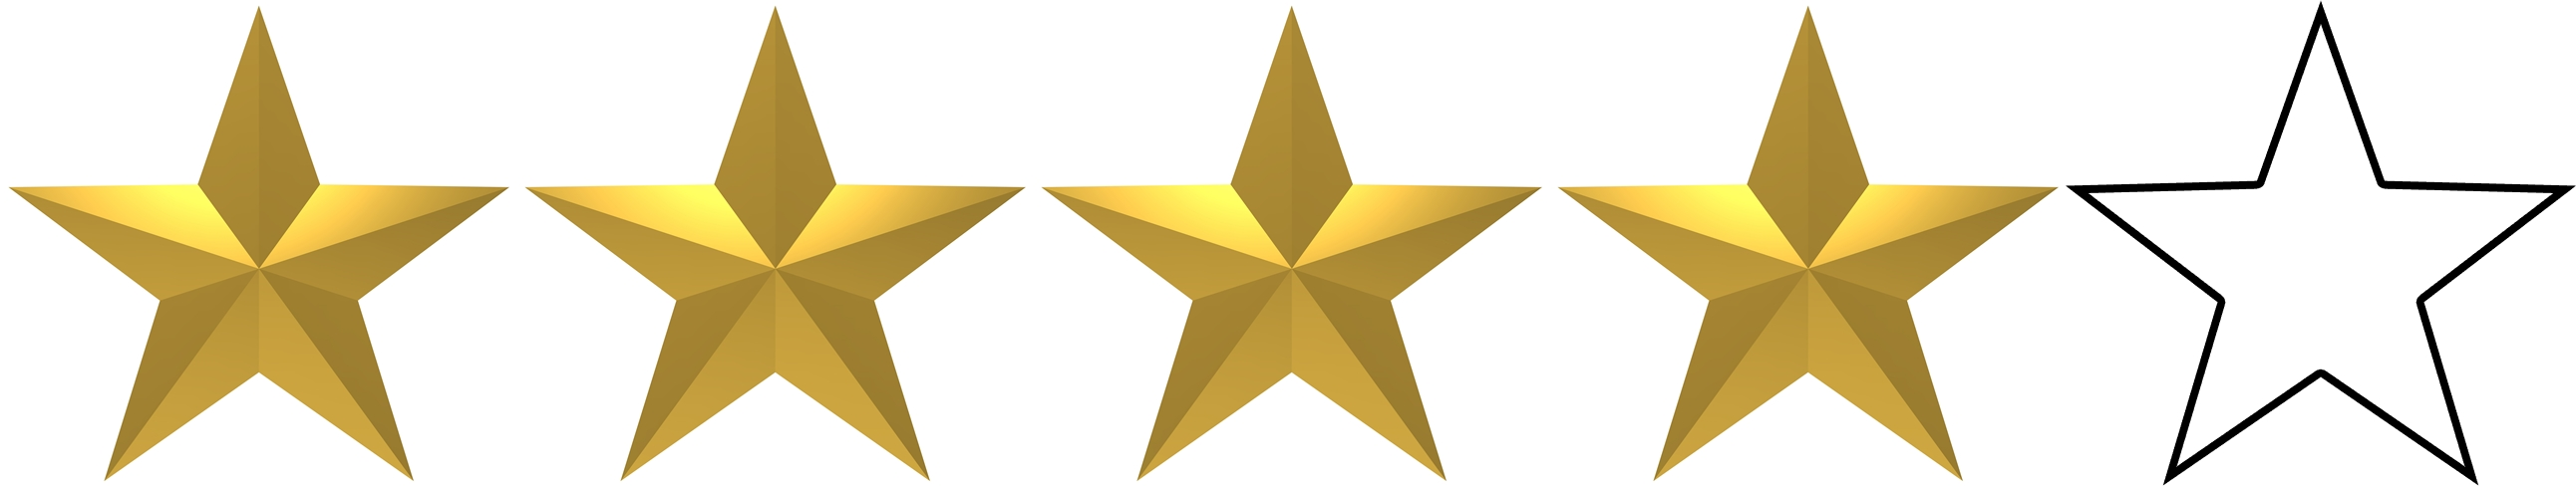 Image result for 4 stars out of 5